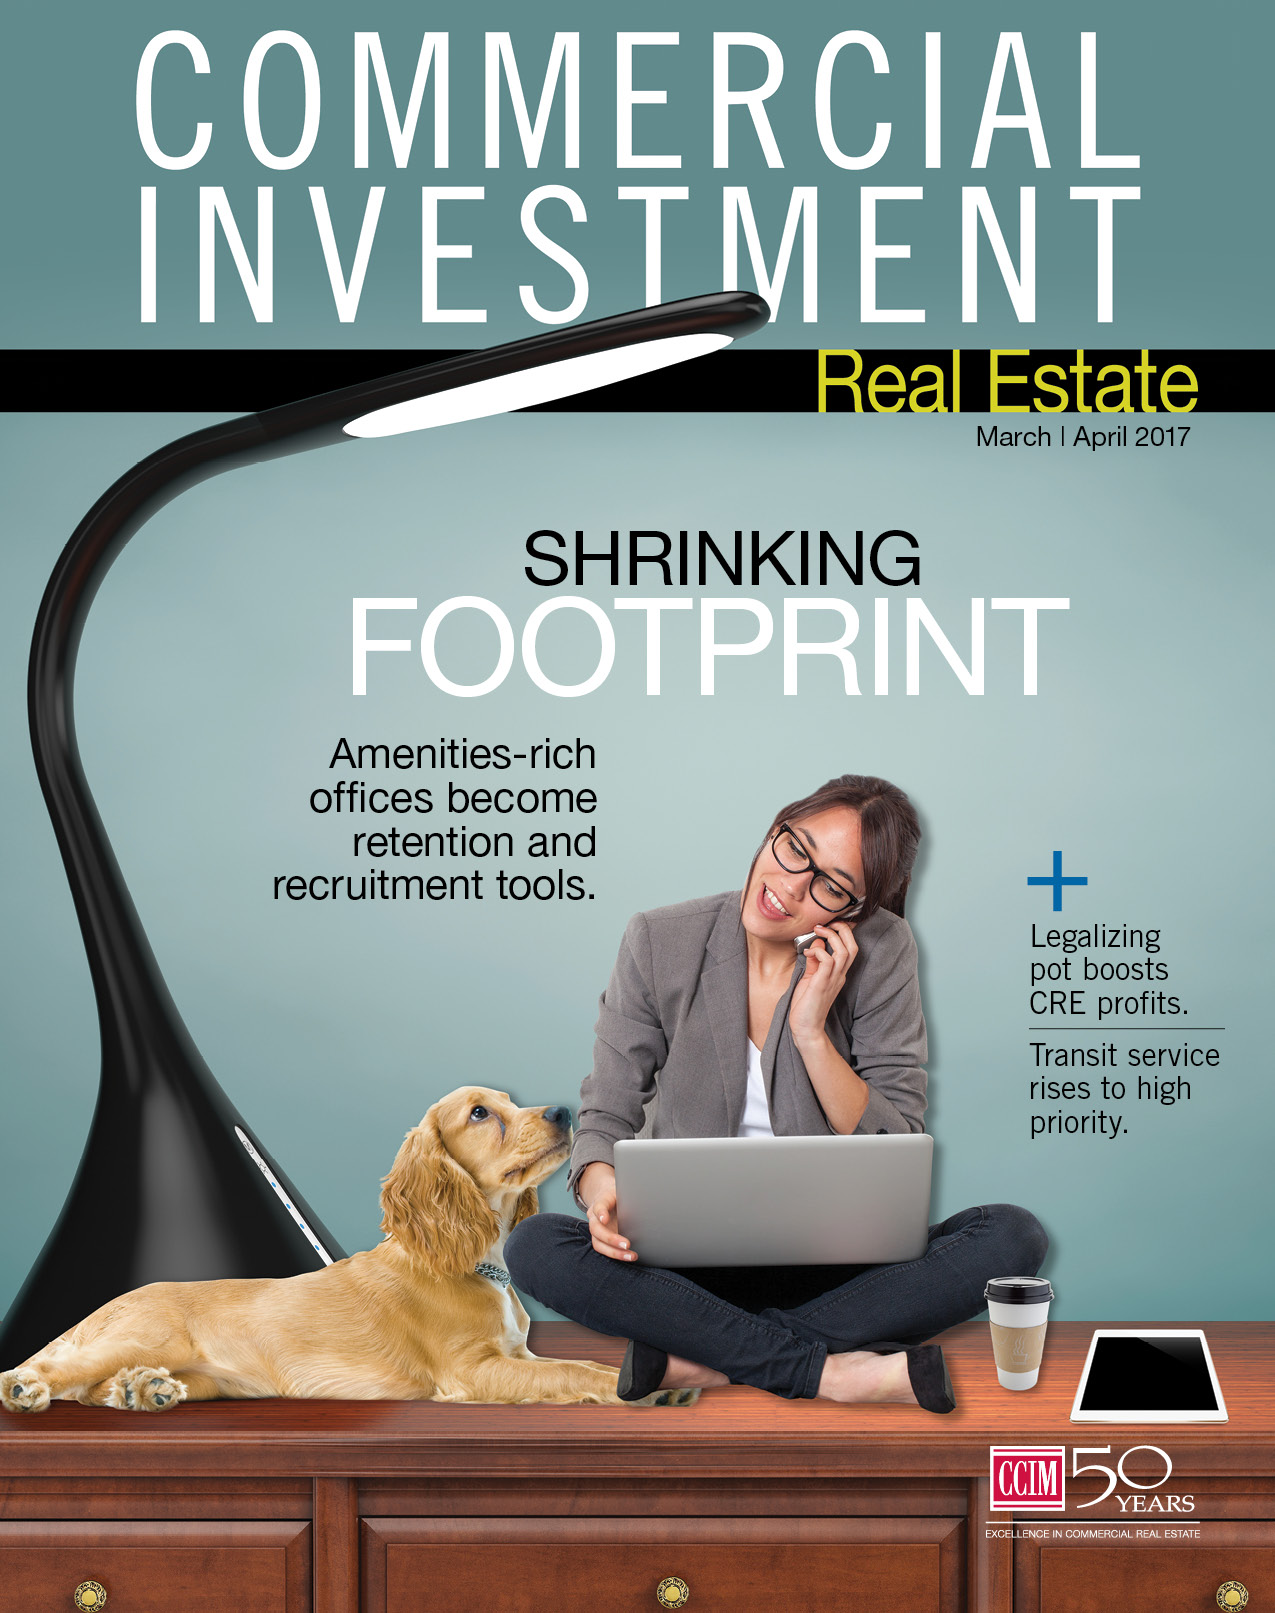 Commercial Investment Magazine cover for March/April 2017. Shows a young woman sitting on a desk with a laptop cramped under and oversized lamp between a dog, her phone, a tablet, and coffee. Cover story title says: Shrinking Footprint: Amerinites-rich offices become retention and recruitment tools.